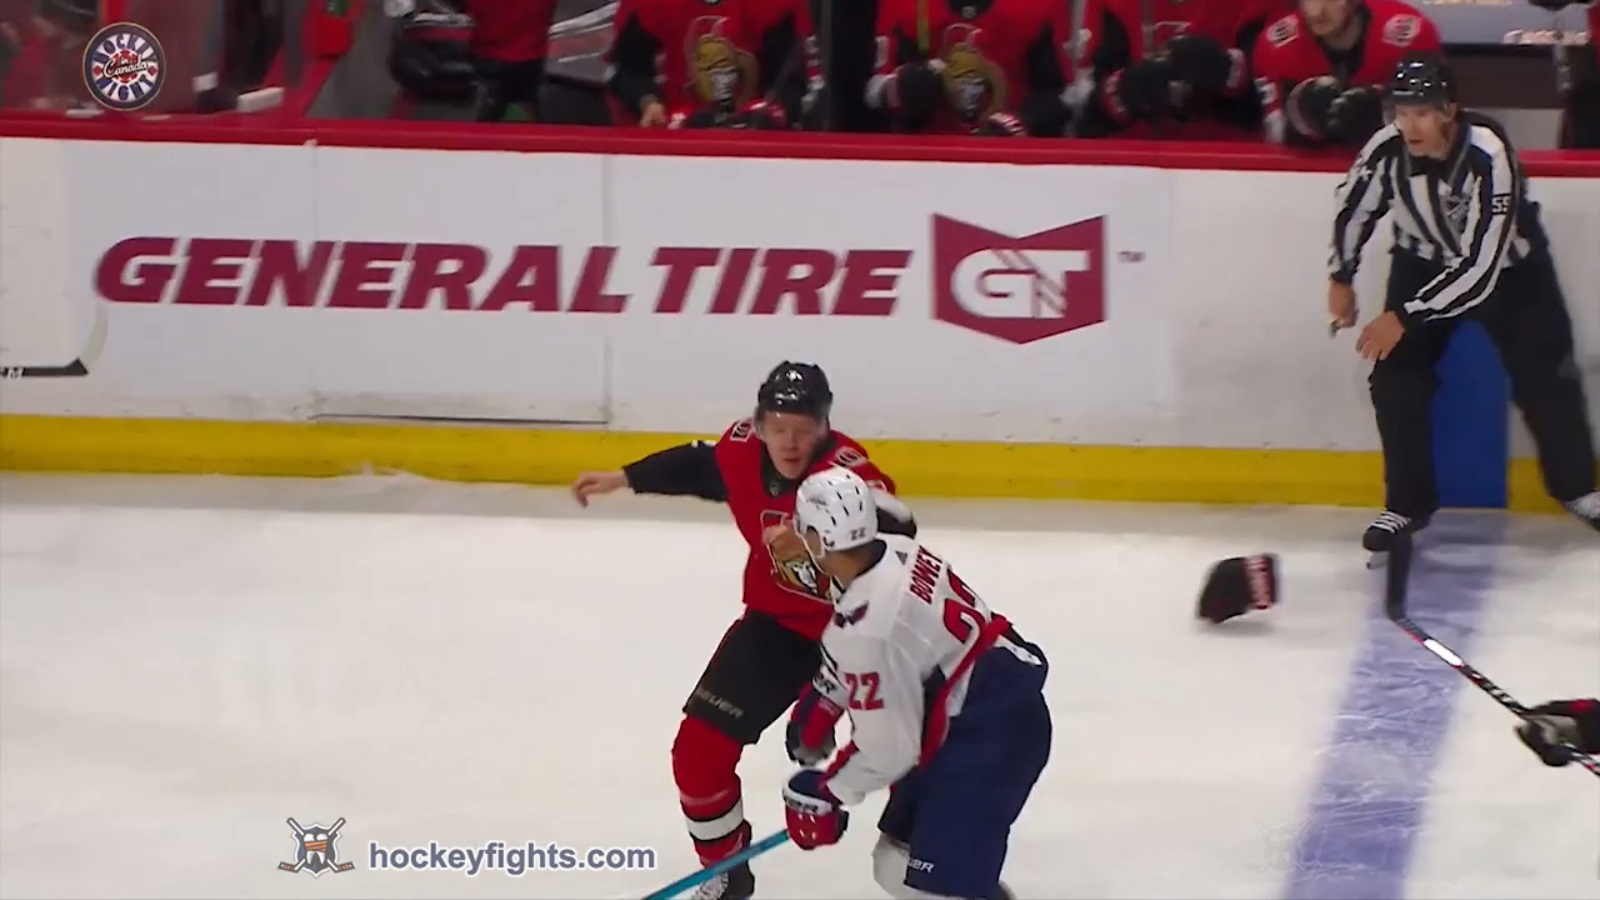 Madison Bowey vs Brady Tkachuk